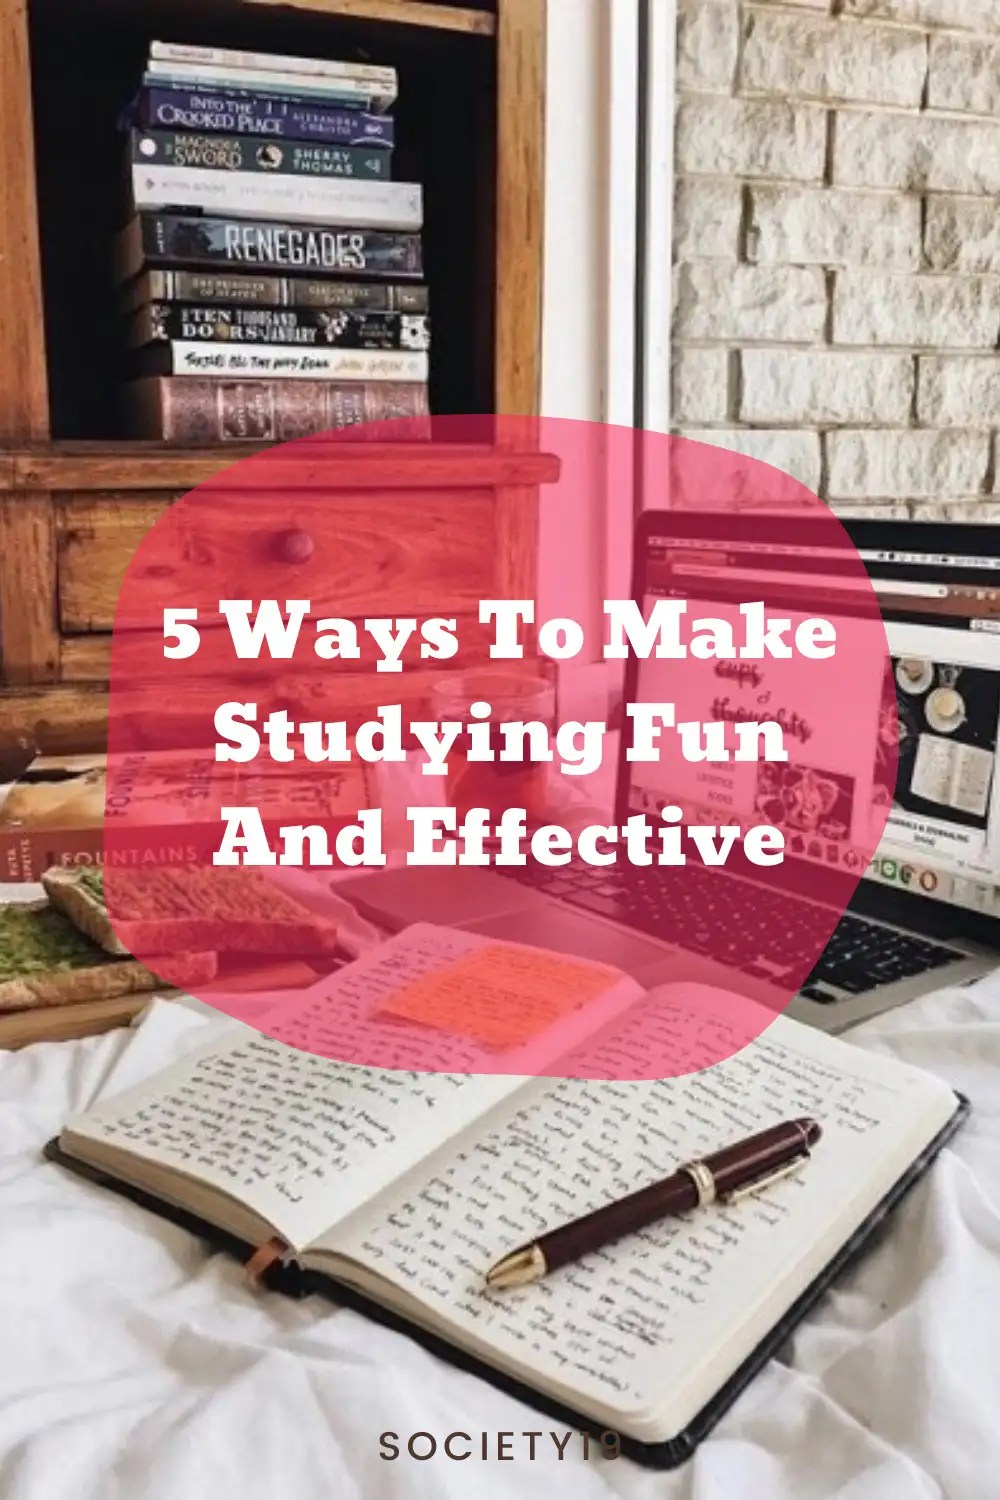 5 Ways To Make Studying Fun And Effective